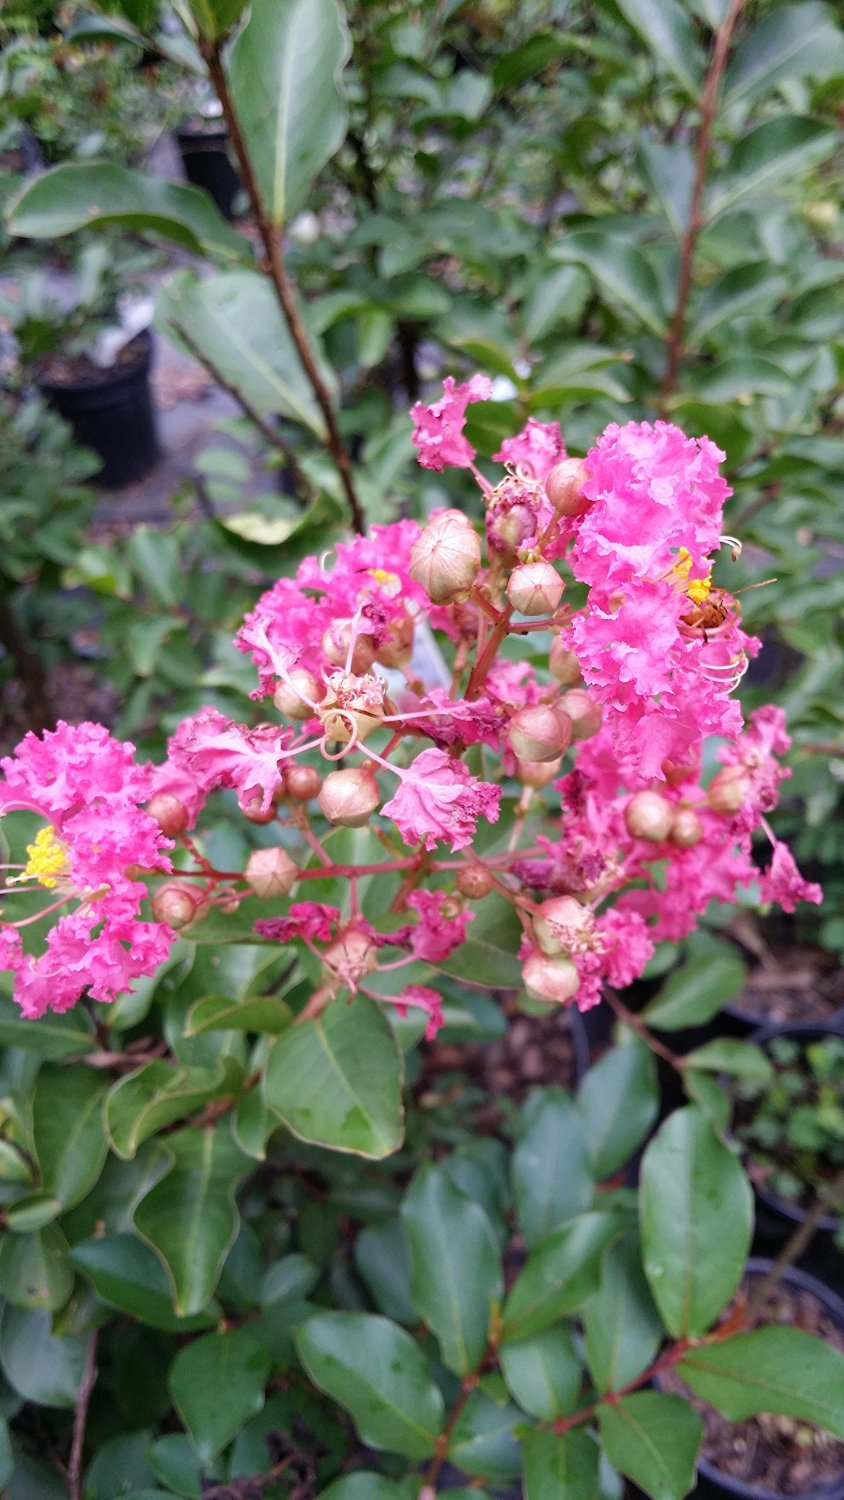 (1 Gallon) Sweetheart Dazzle® CRAPE MYRTLE, stunning DWARF, compact mounded shrub, gorgeous pink blooms from summer to fall